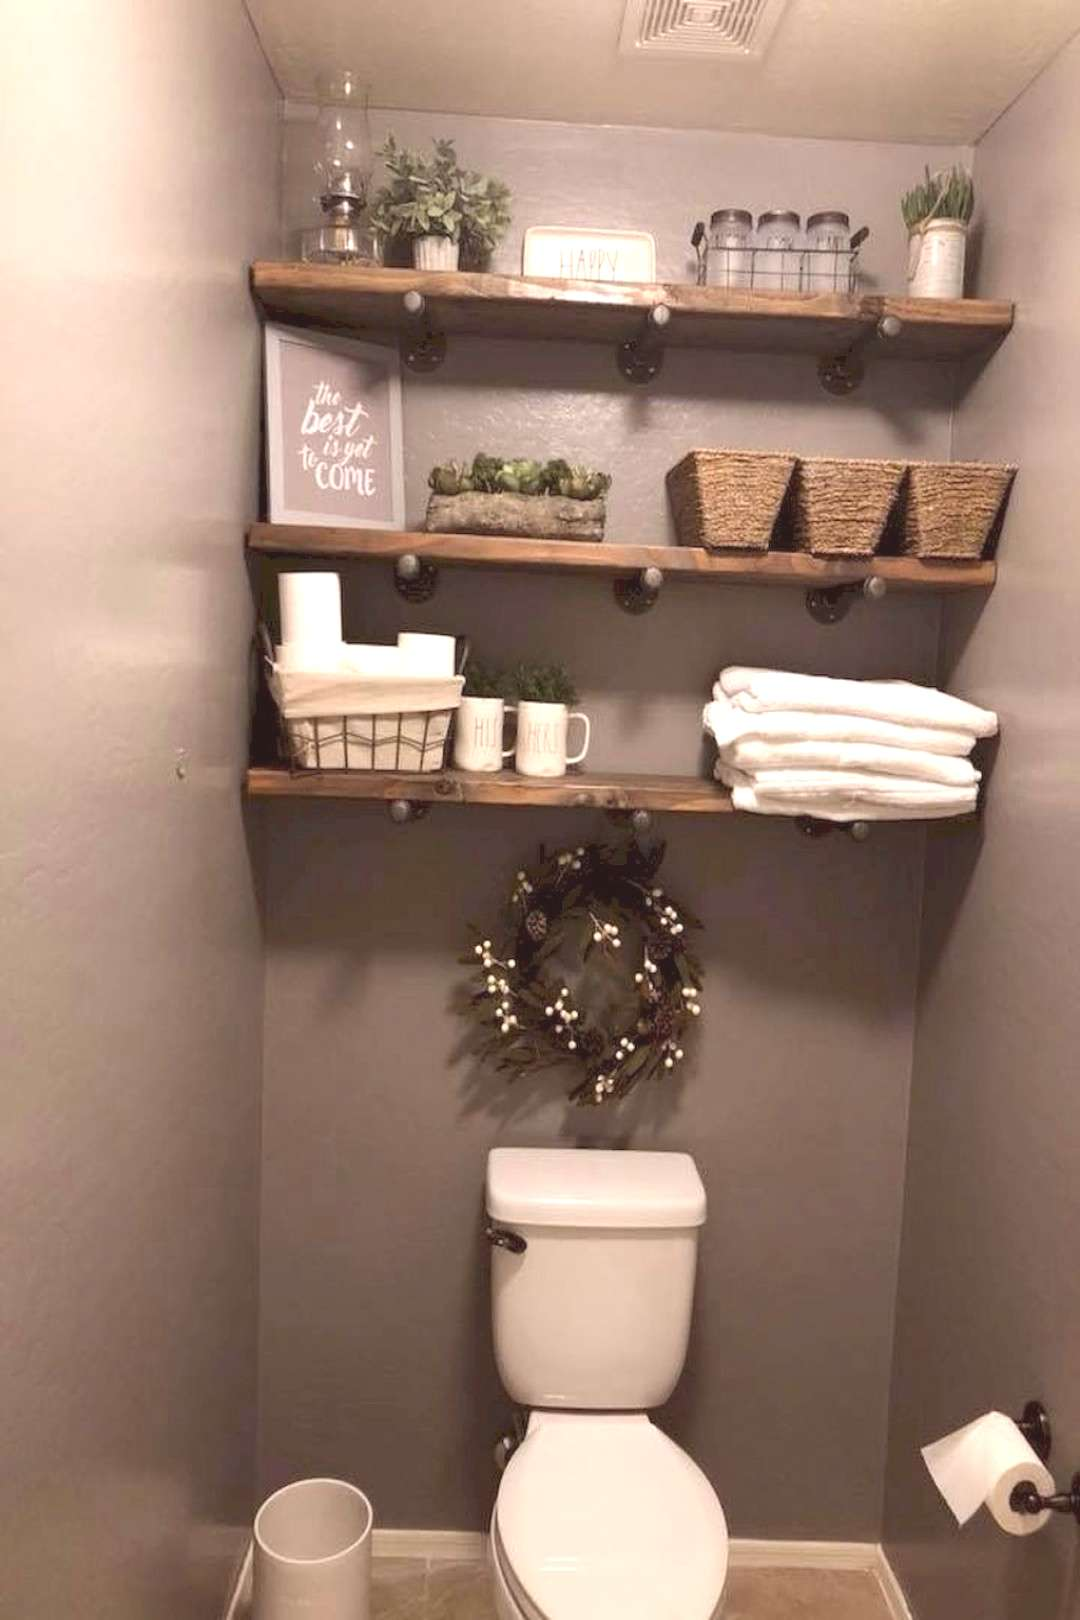 4 Exceptional Rustic Bathroom Ideas For Home Want To Learn More? Visit Us For More Rustic Bathroo